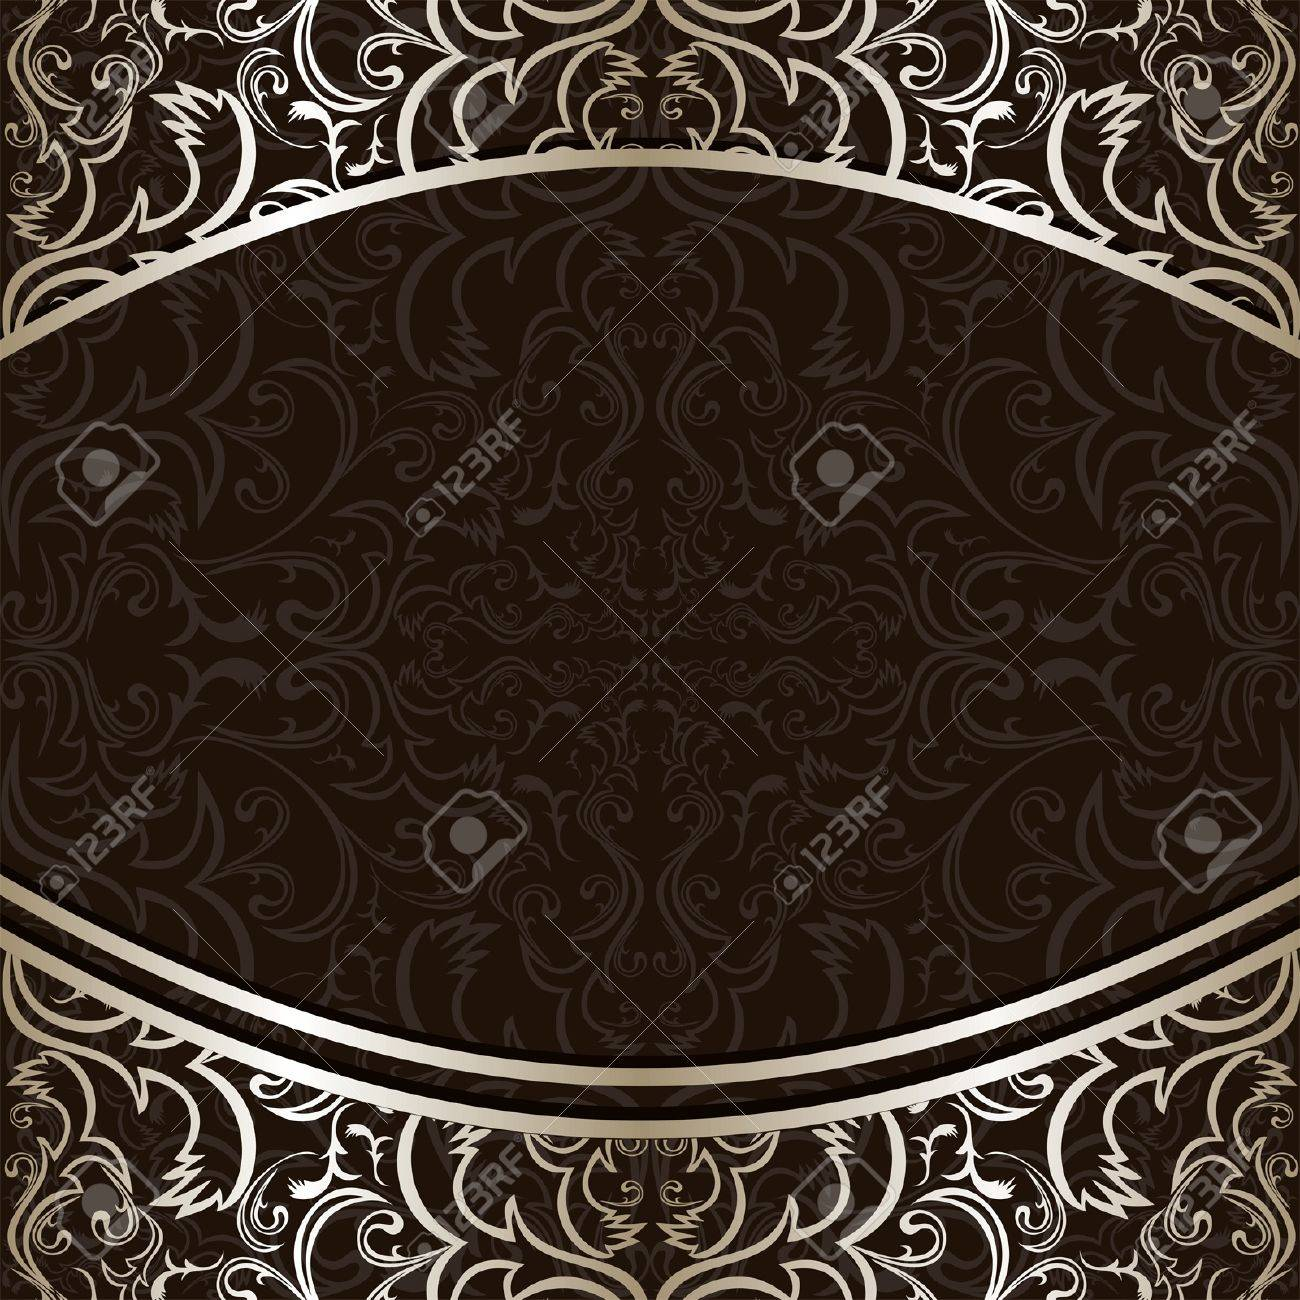 Luxury Background decorated by ornamental silver borders. - 18022746